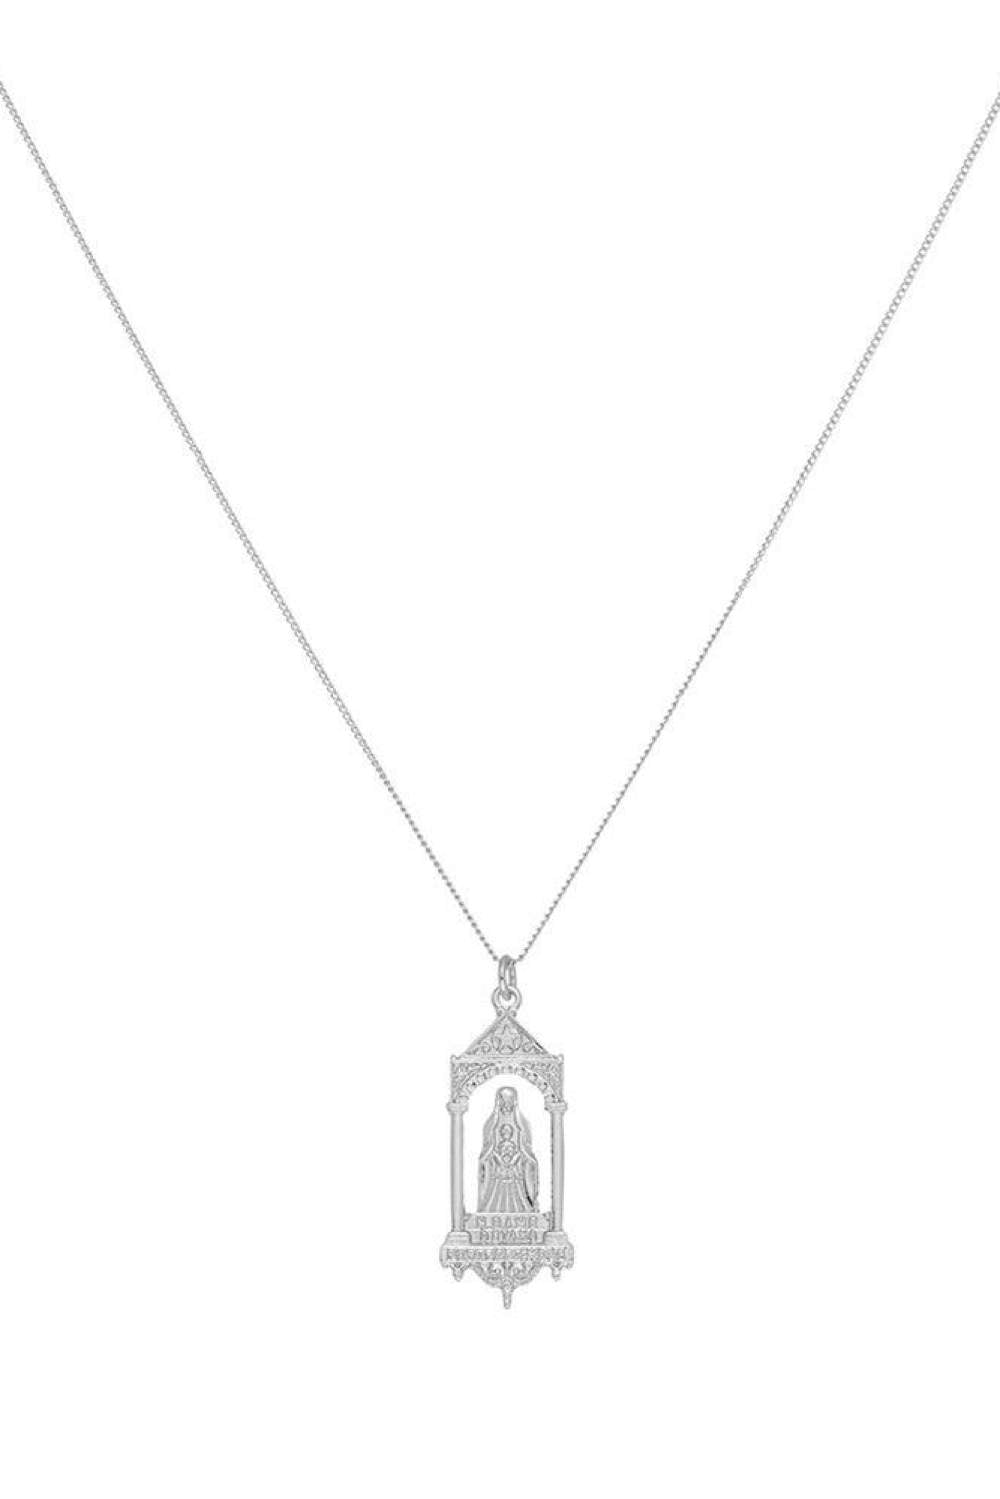 Chained & Able Faith Detail Tag - Silver